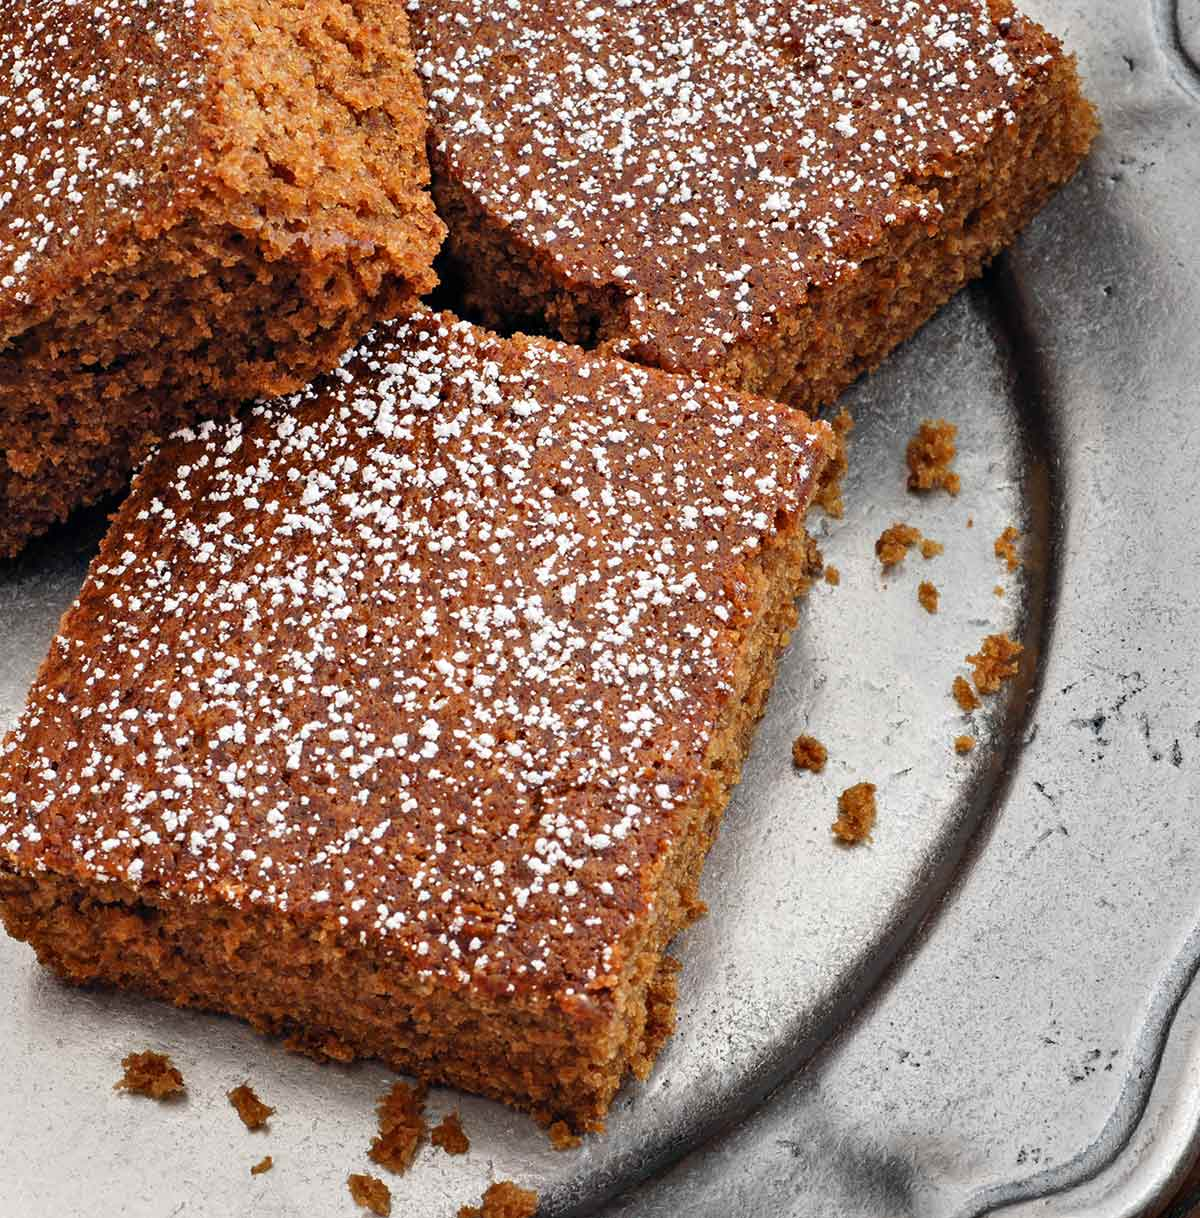 Squares of best homemade gingerbread cake dusted with confectioners' sugar on a silver platter.